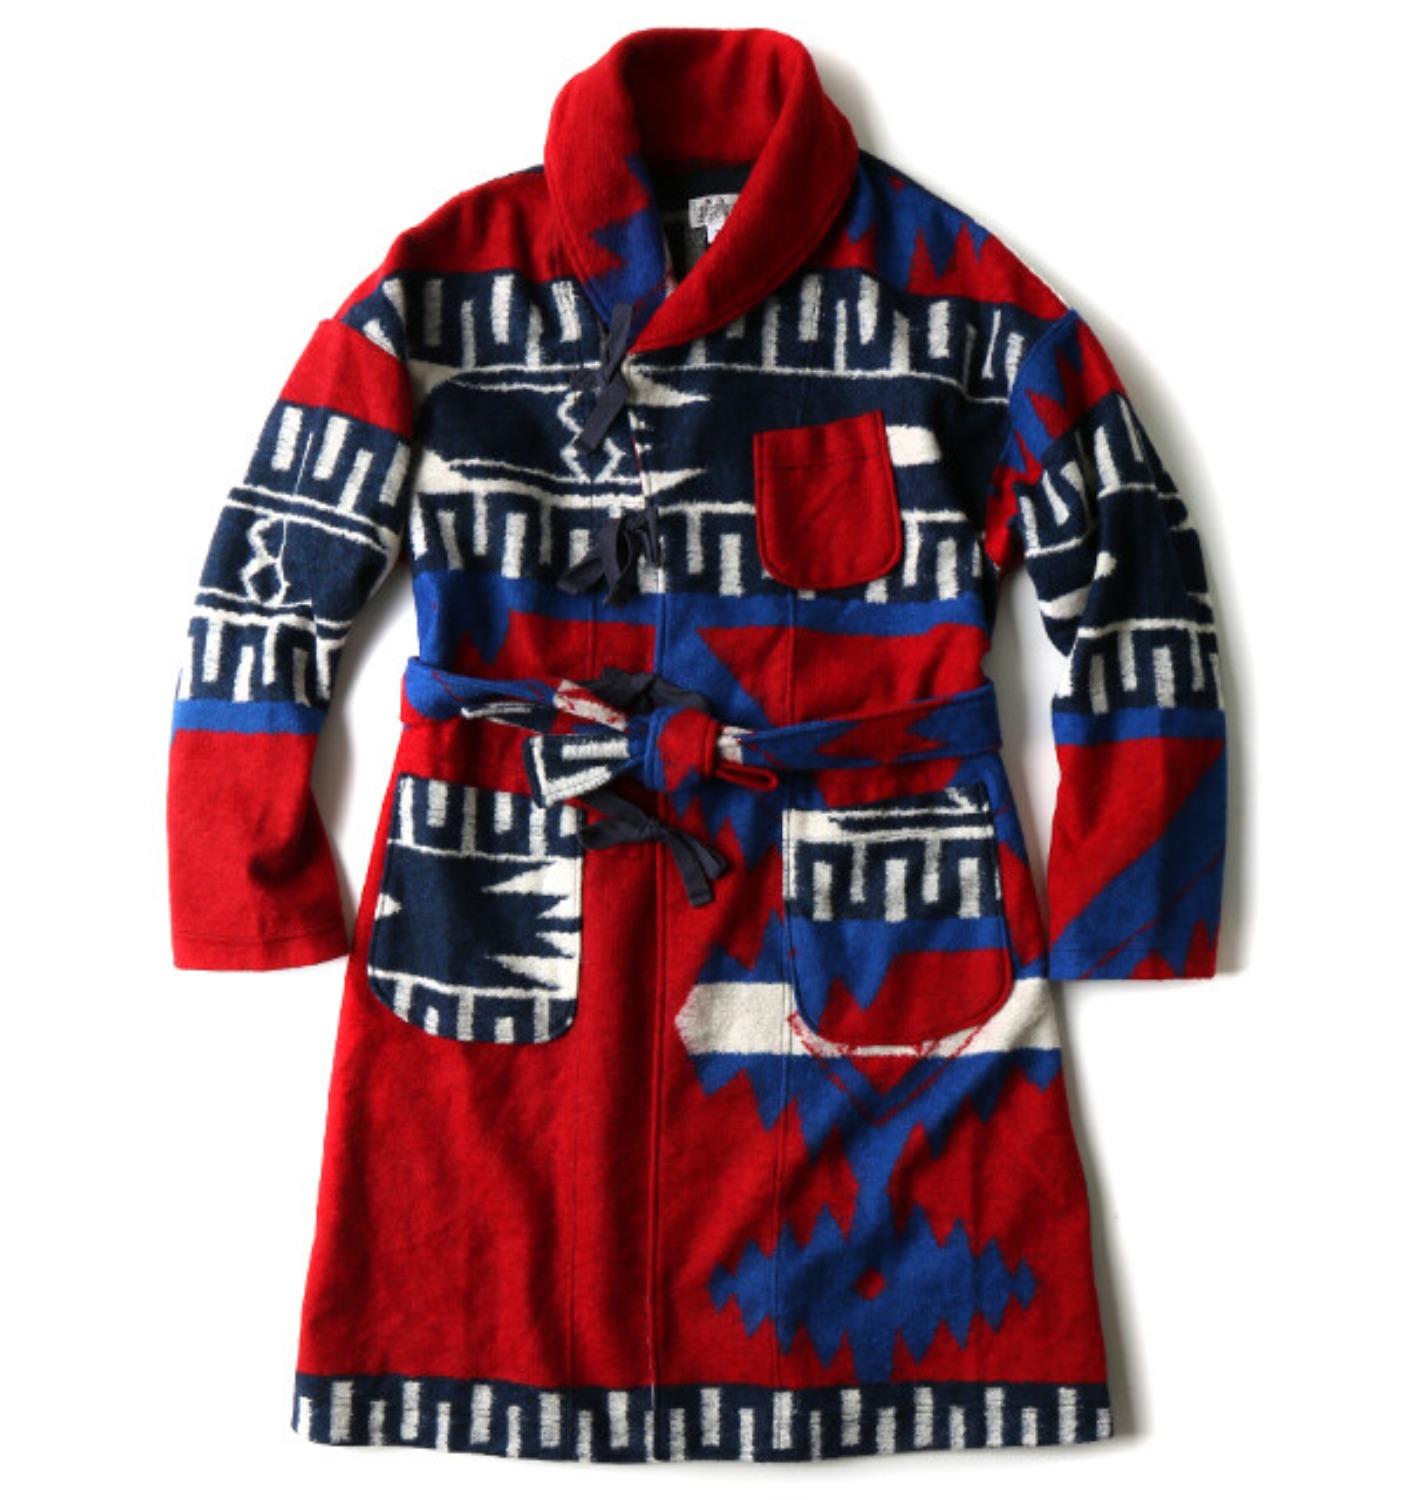 SHAWL COLLAR KNIT JACKET RED/ROYAL NAVAJO KNIT